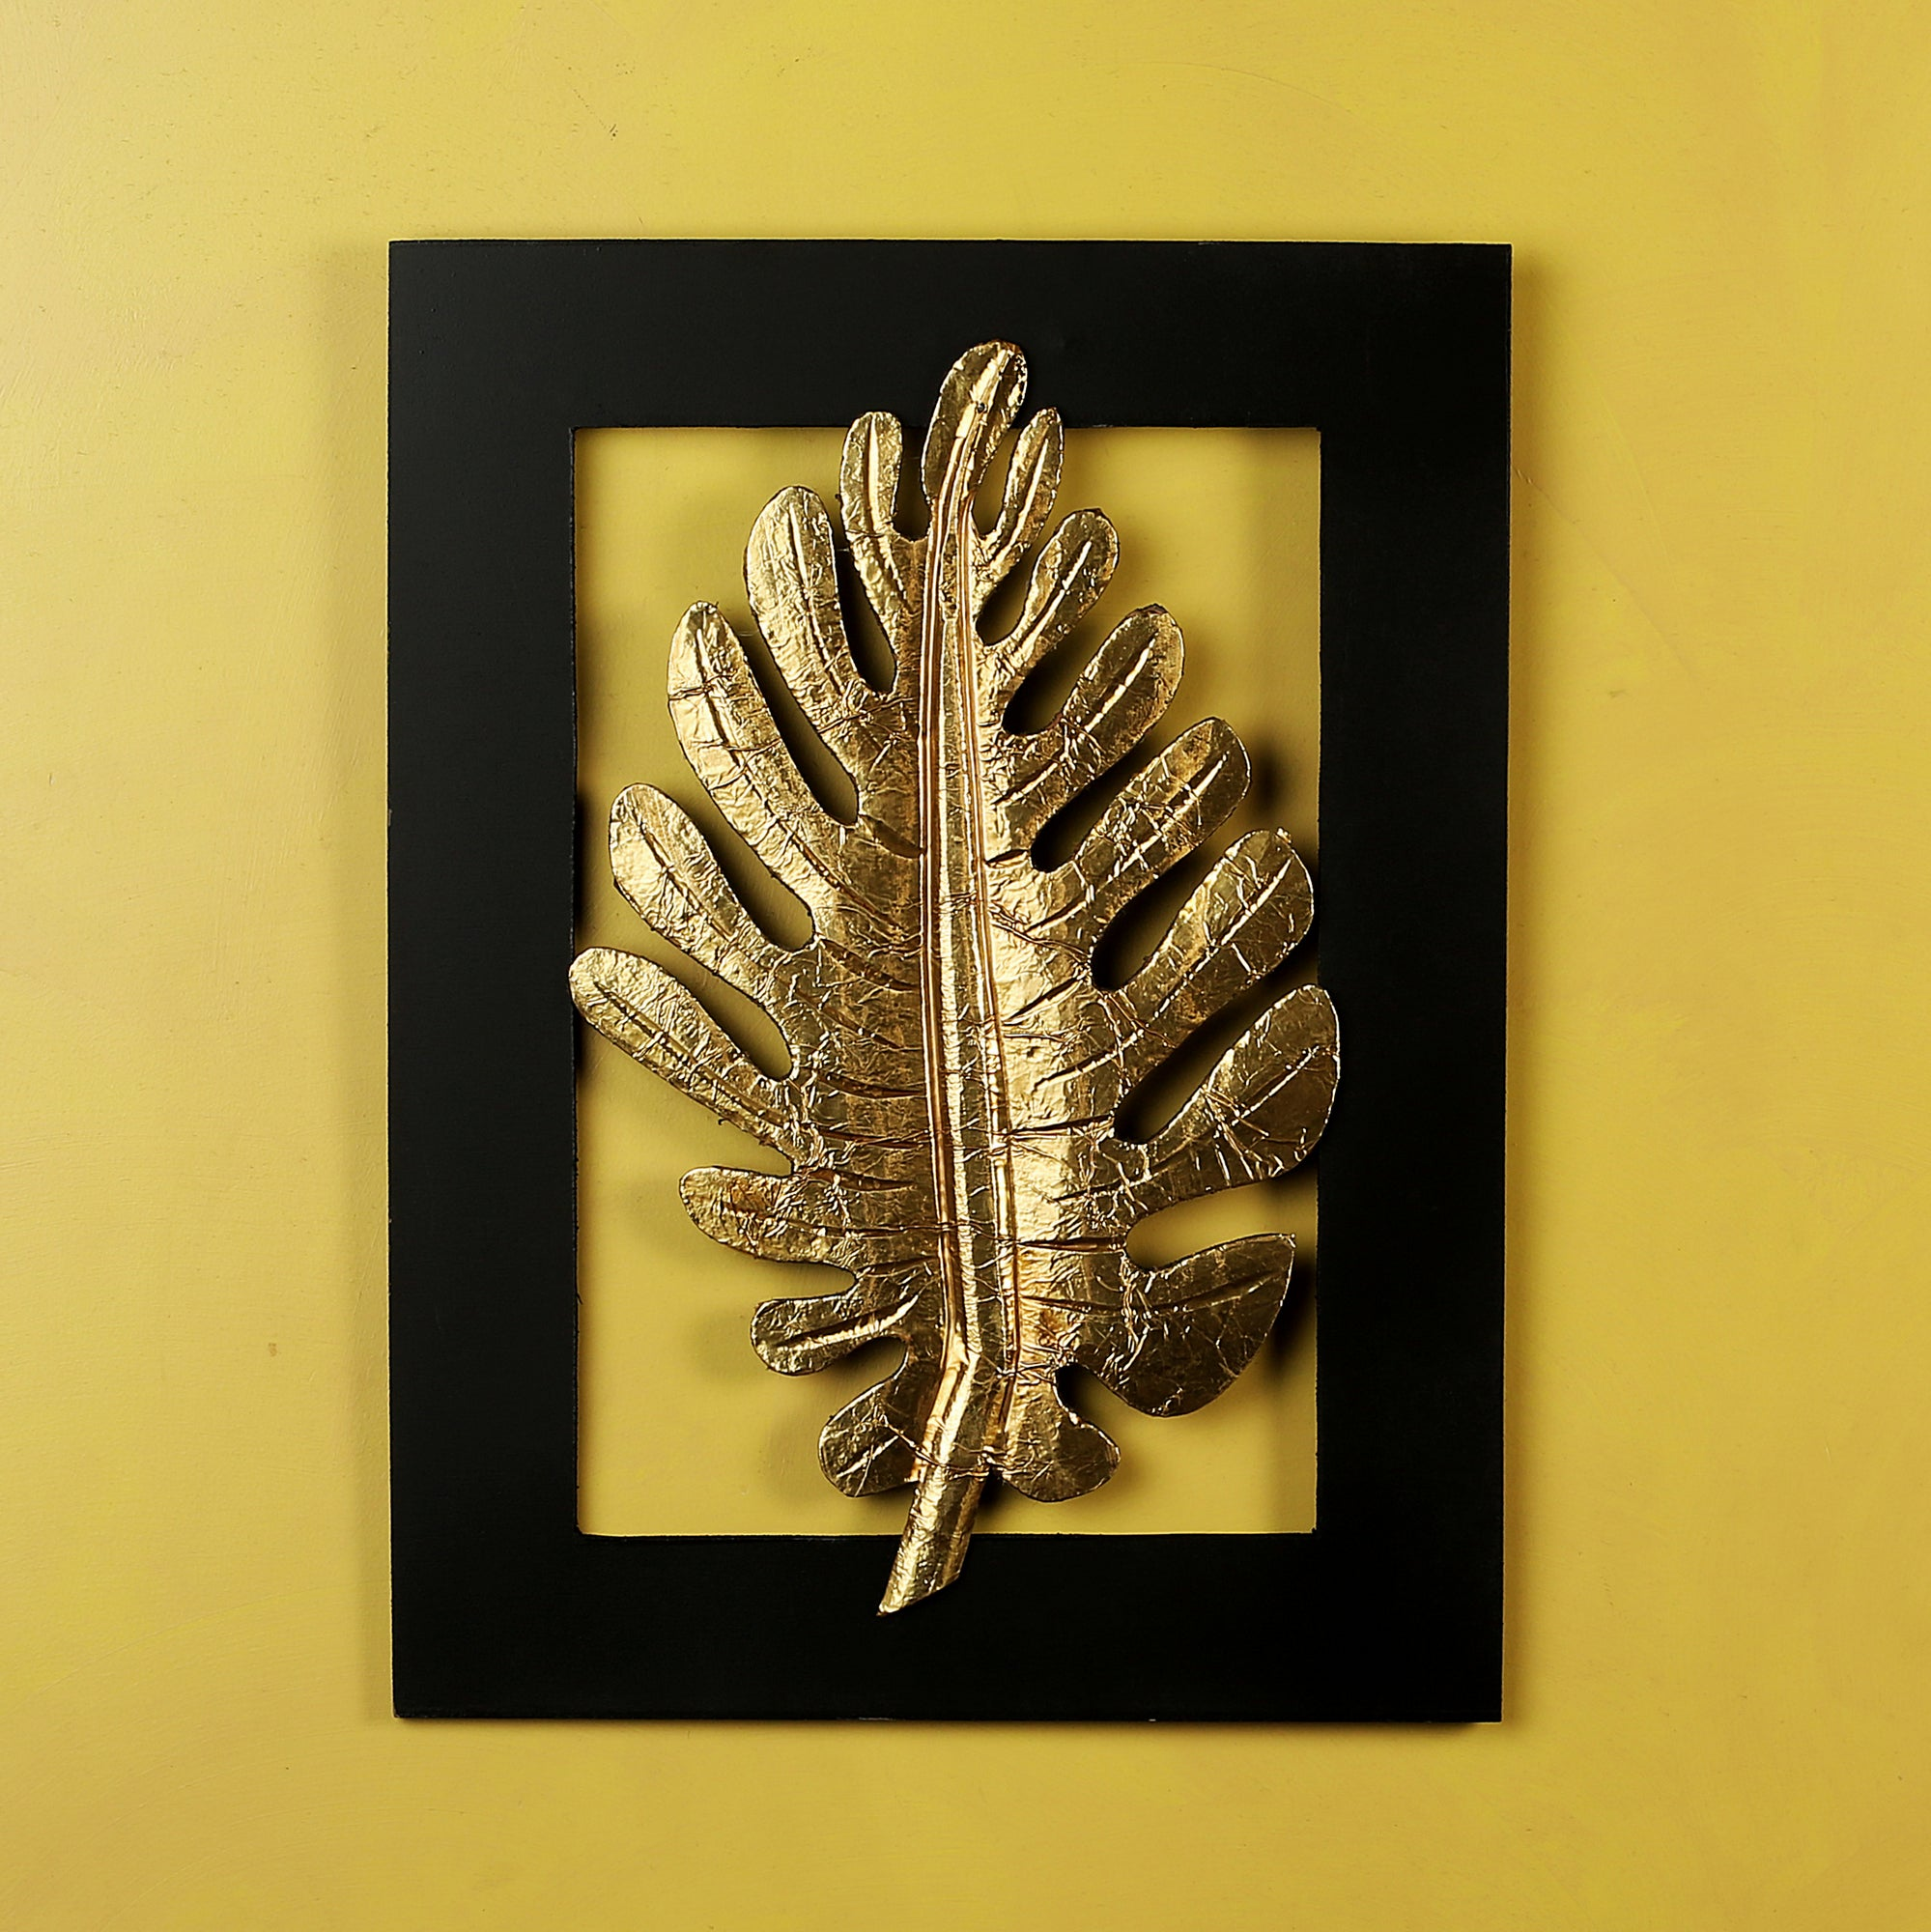 Buy Wall Decor at best Prices - Cultural Concepts